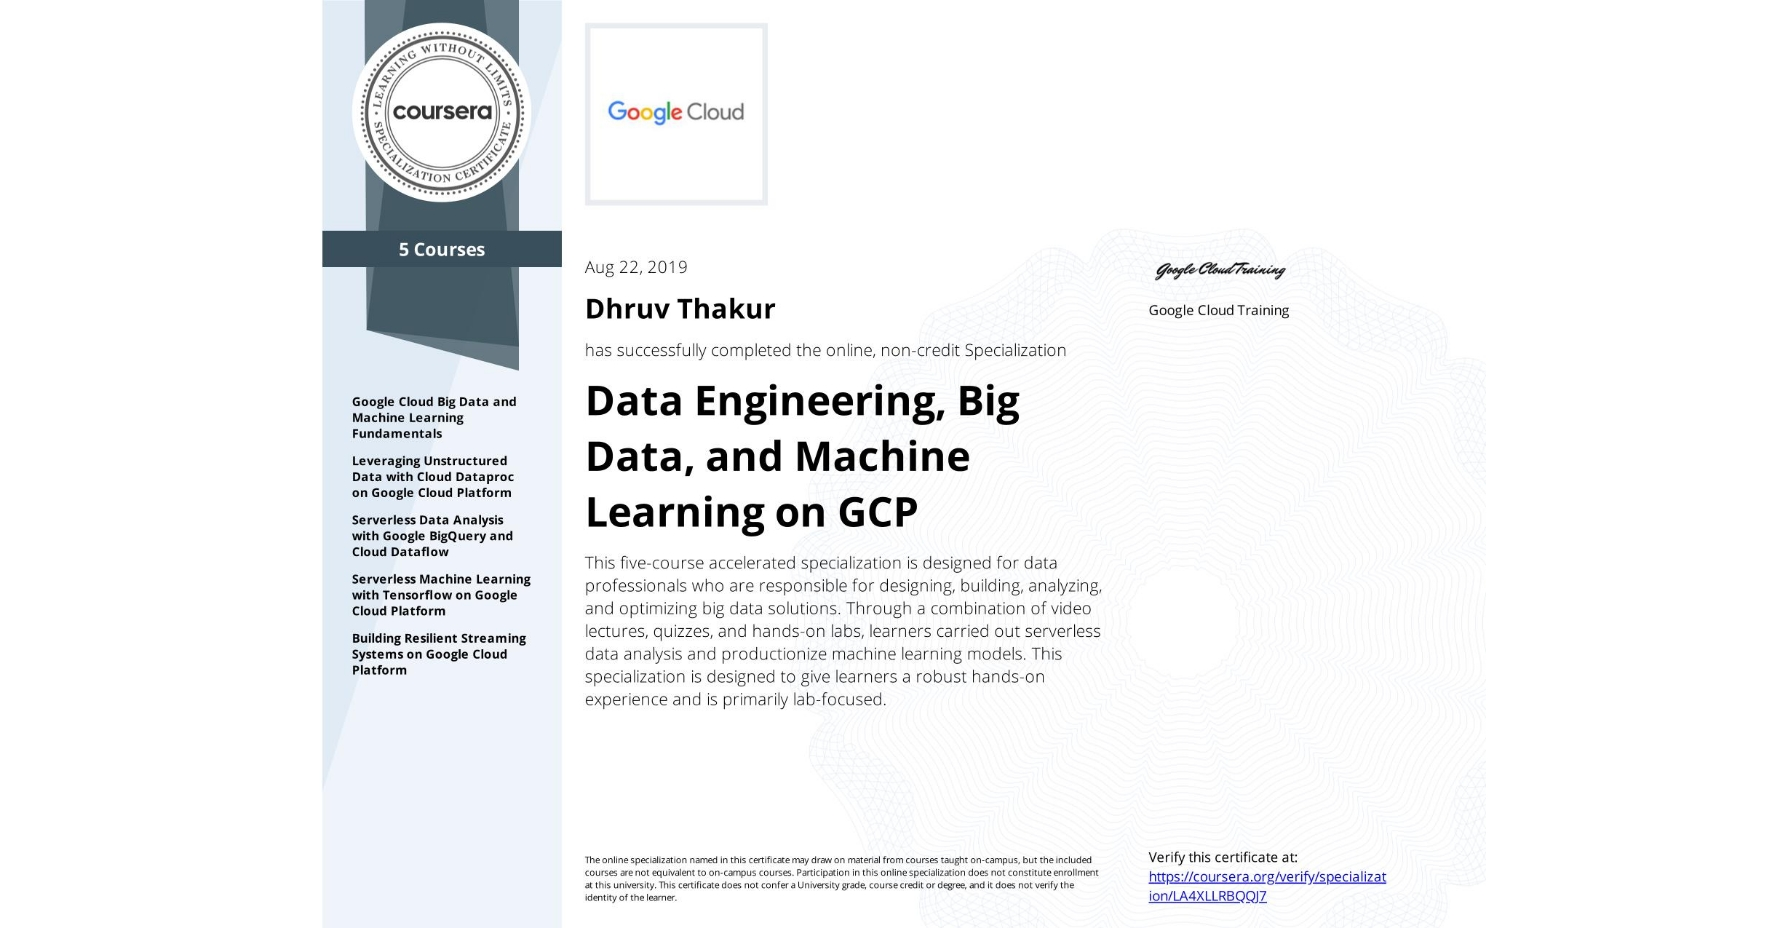 View certificate for Dhruv Thakur, Data Engineering, Big Data, and Machine Learning on GCP, offered through Coursera. This five-course accelerated specialization is designed for data professionals who are responsible for designing, building, analyzing, and optimizing big data solutions. Through a combination of video lectures, quizzes, and hands-on labs, learners carried out serverless data analysis and productionize machine learning models. This specialization is designed to give learners a robust hands-on experience and is primarily lab-focused.